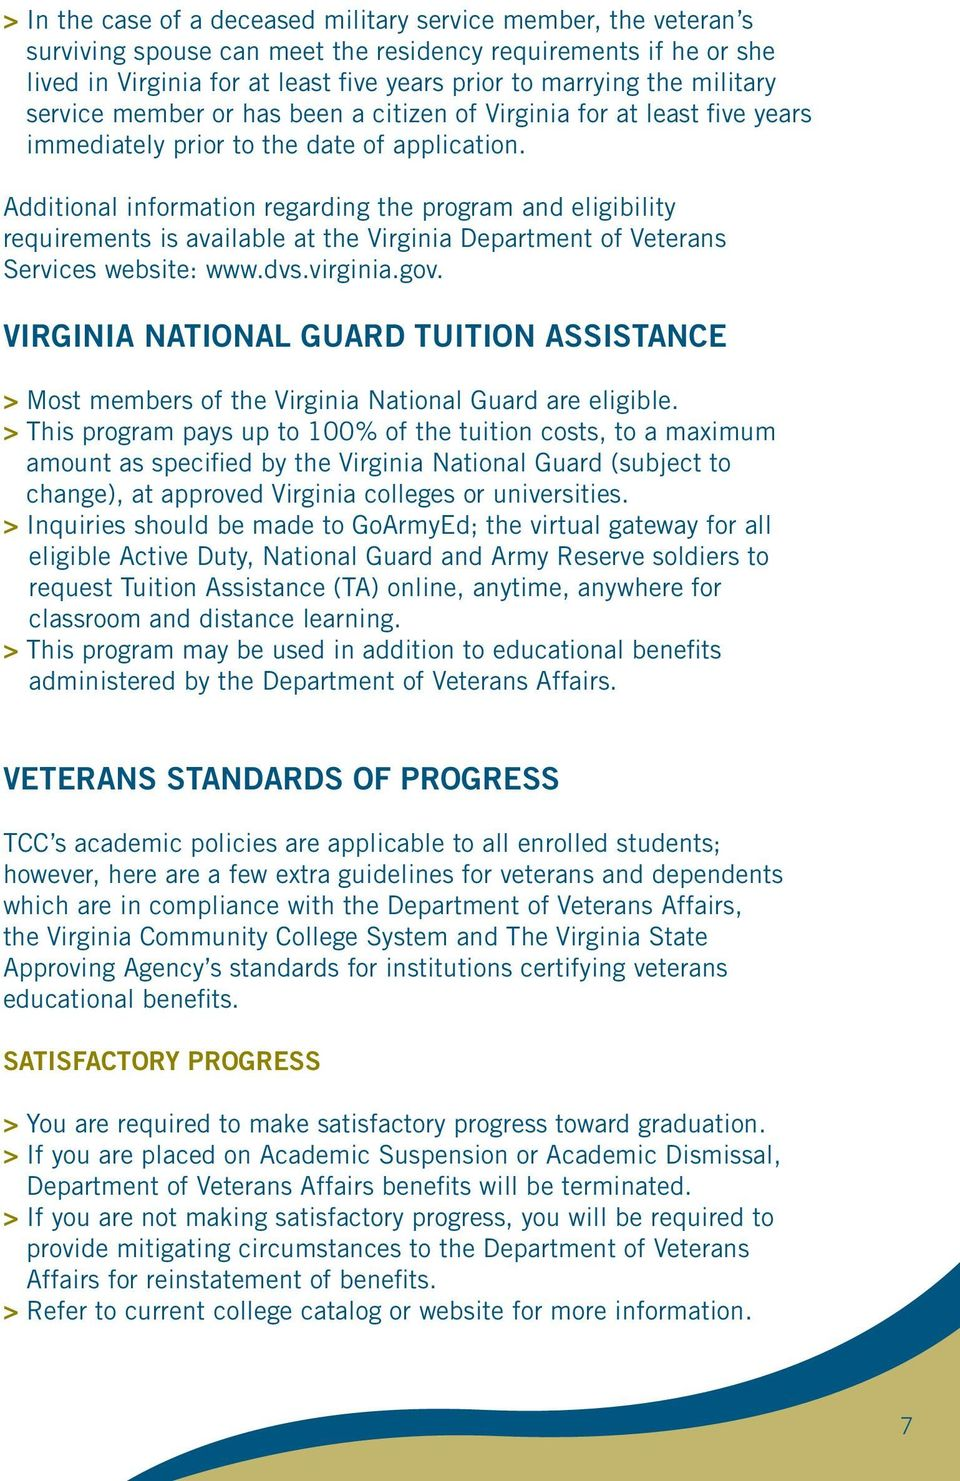 Additional information regarding the program and eligibility requirements is available at the Virginia Department of Veterans Services website: www.dvs.virginia.gov.